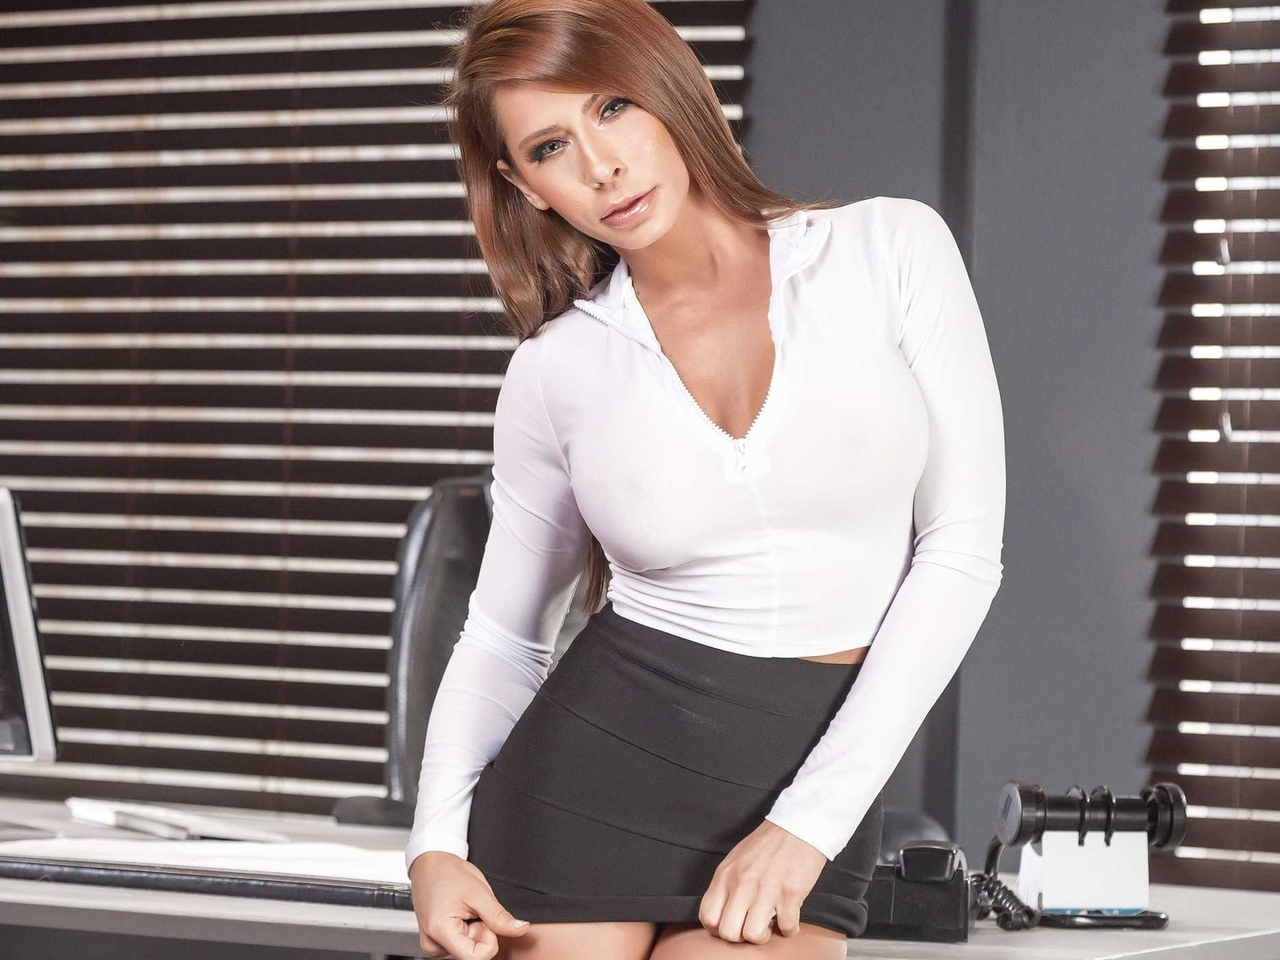 madison ivy, white shirt, gray skirt